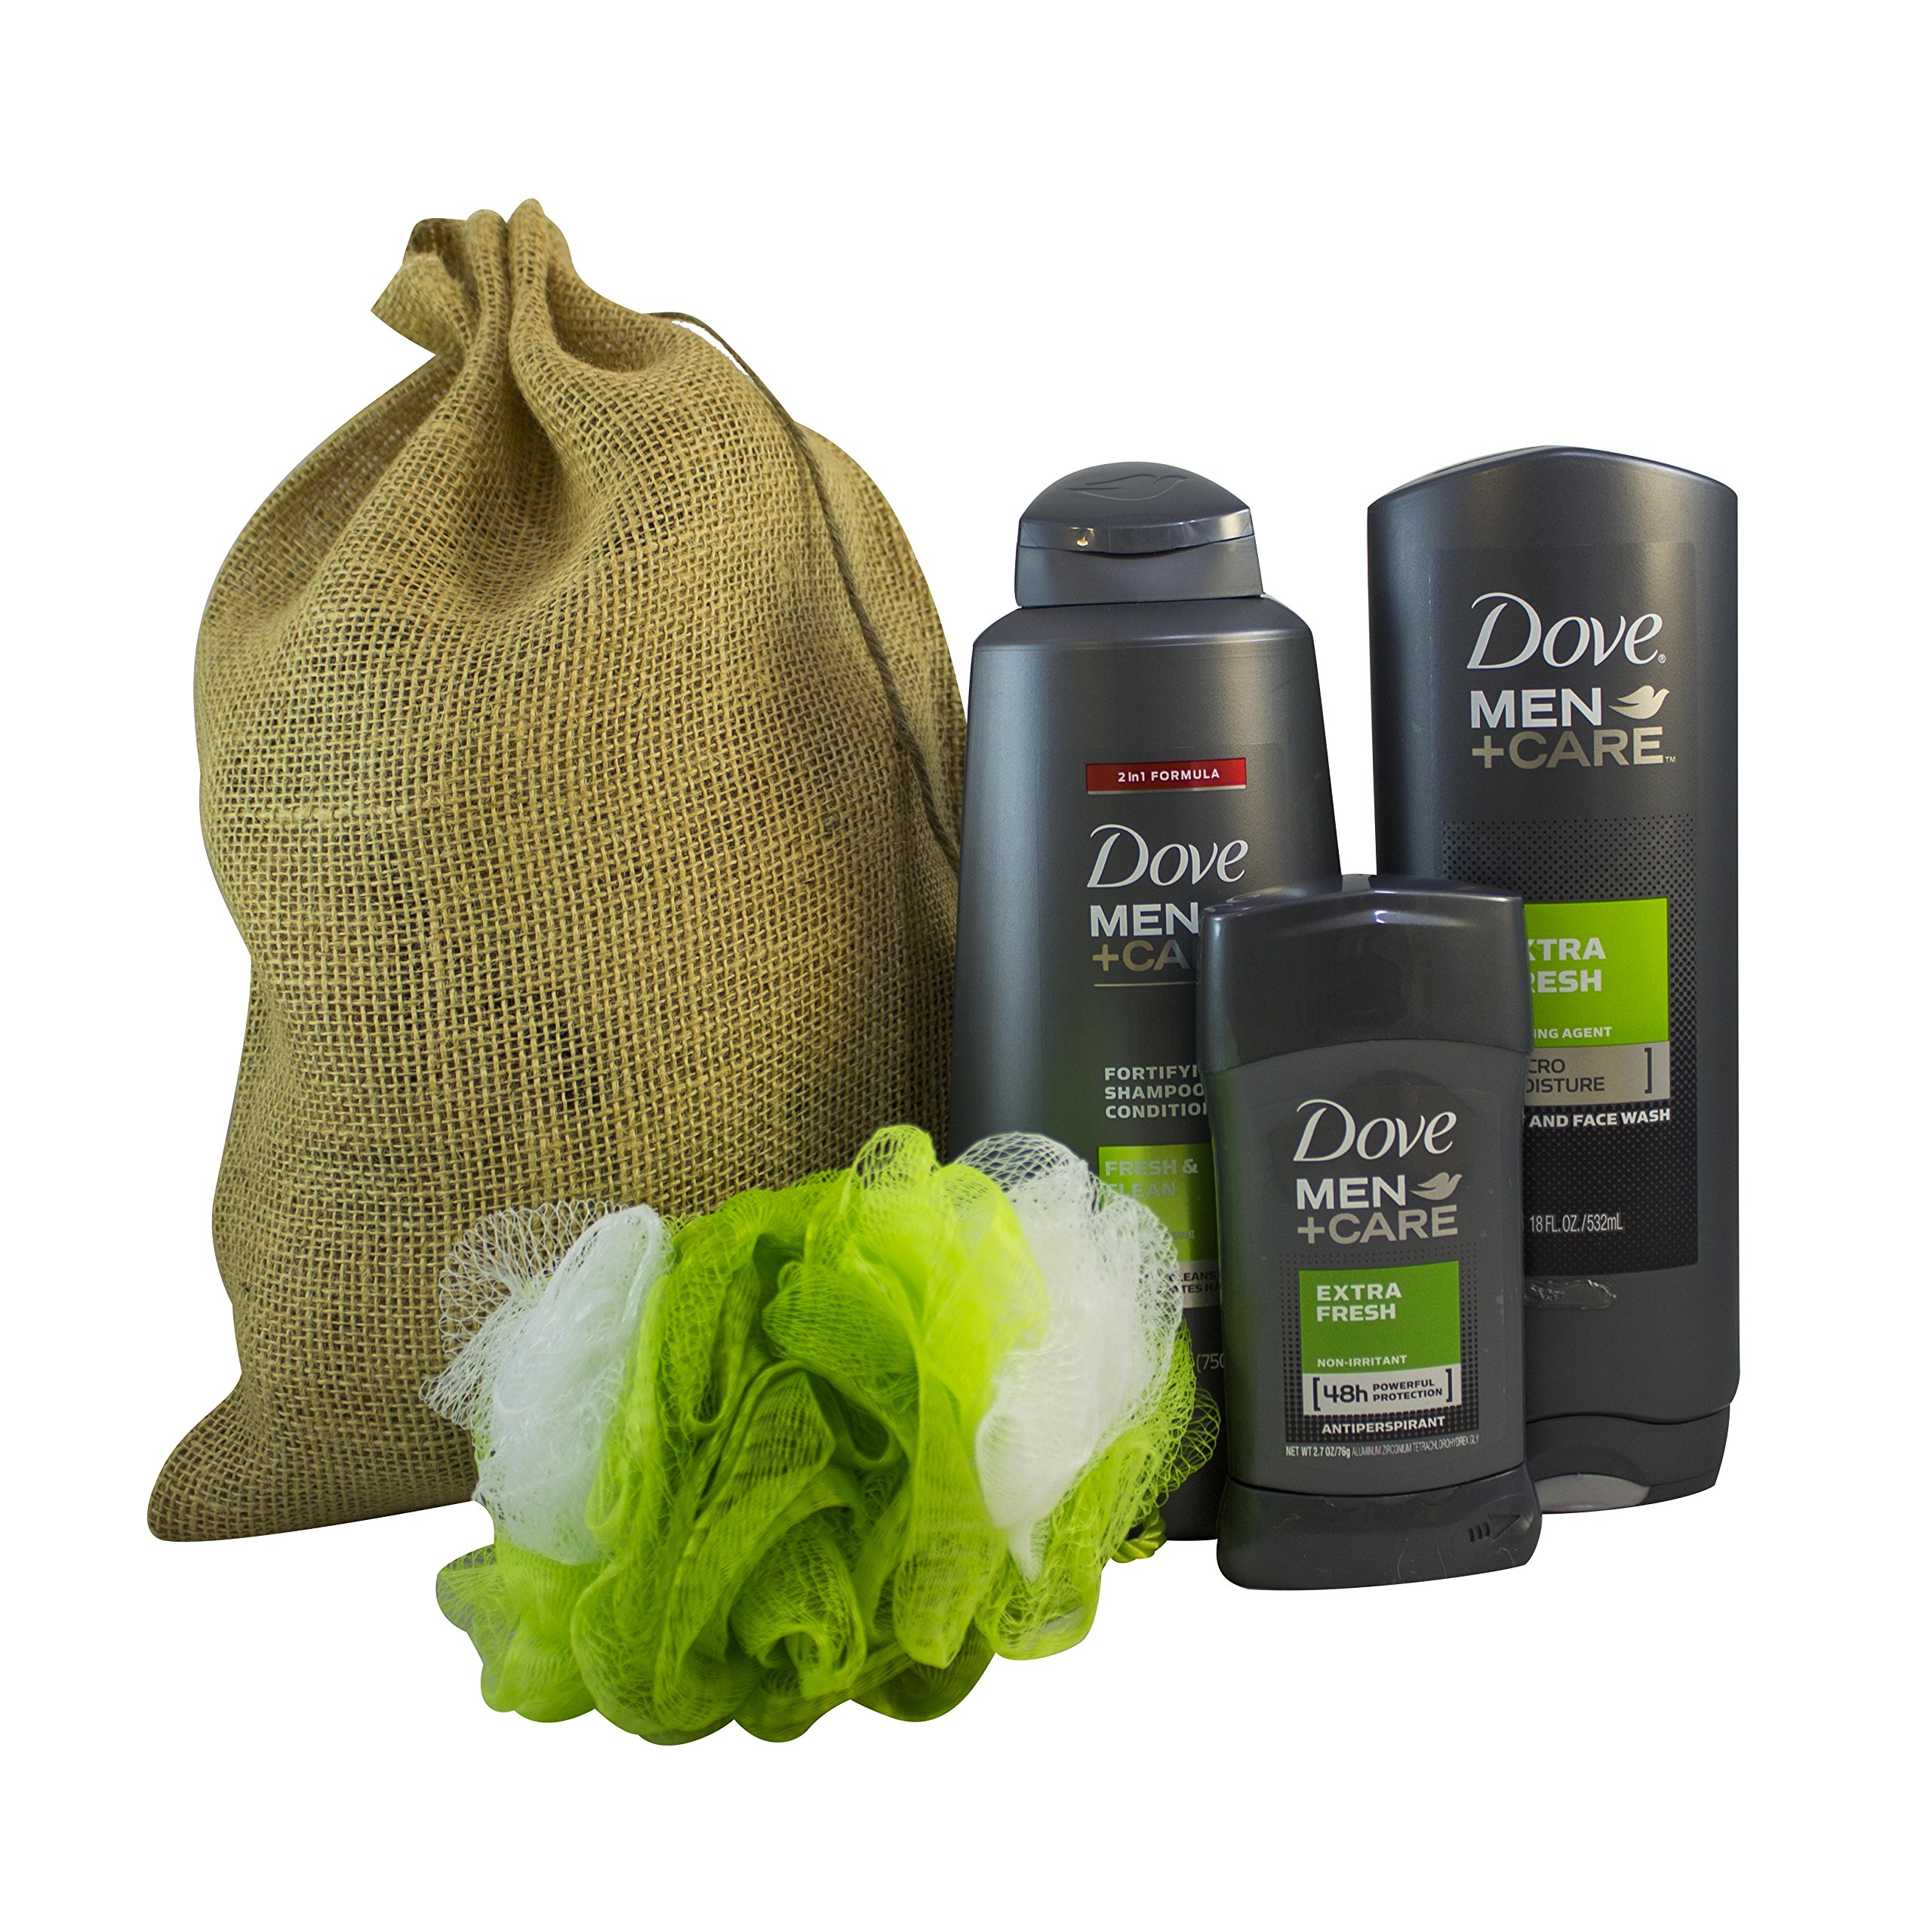 Dove Men + Care Gift Set with Large Full Size Shampoo + Conditioner, Body and Face Wash, Deodorant, and Body Pouf in Gift Bag (Extra Fresh)